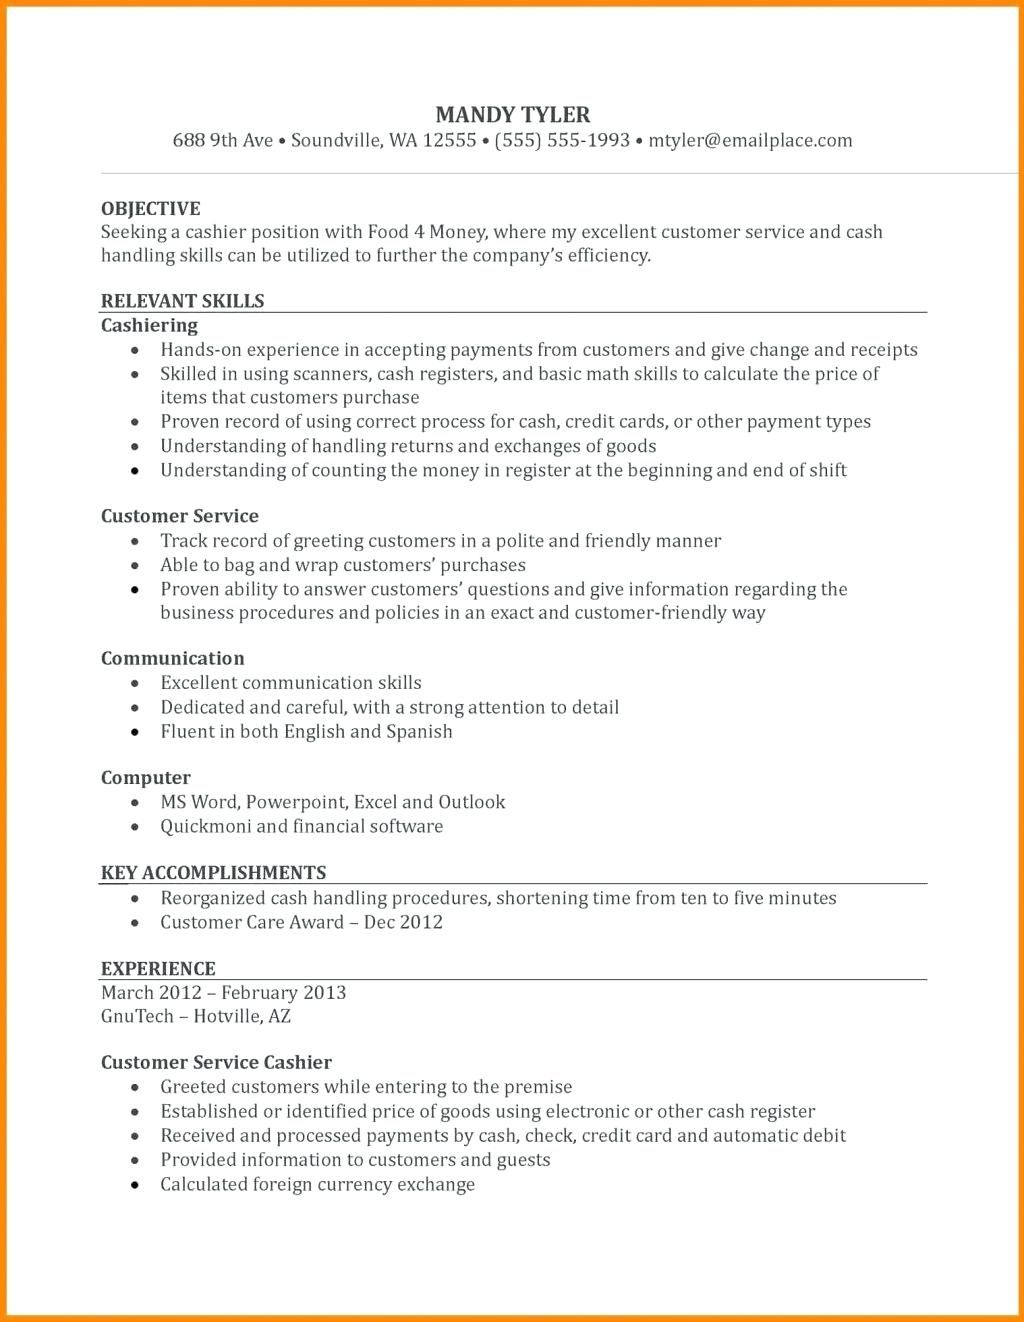 Brilliant Ideas For Corporate Credit Card Policy Template Of With Company Credit Card Policy Template Cu Retail Resume Retail Resume Examples Resume Examples